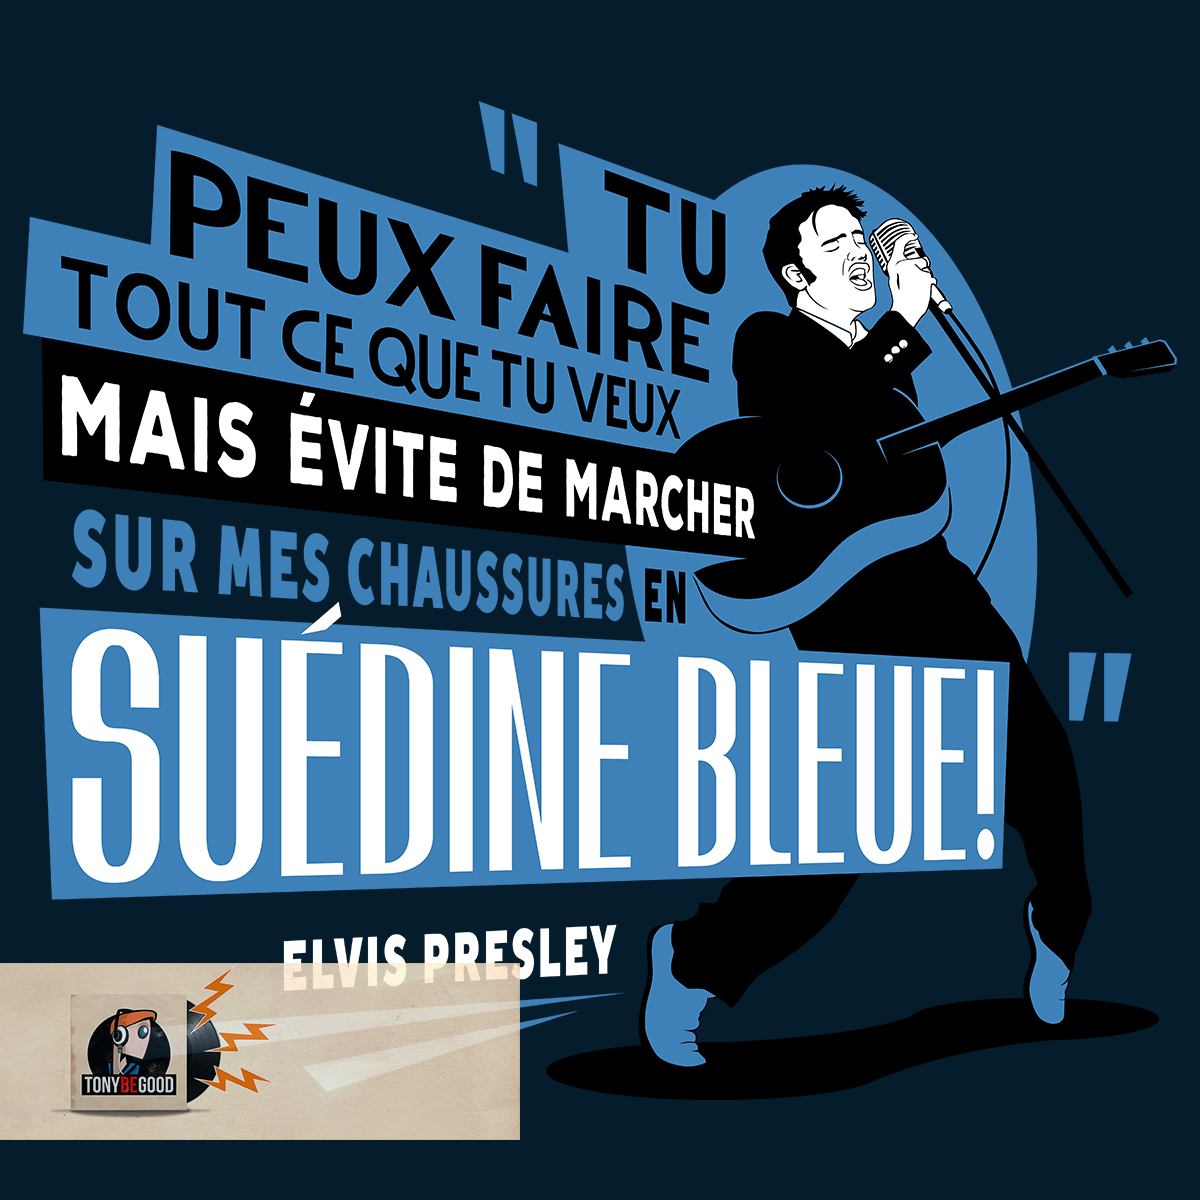 Traduction littérale de Blue Suede Shoes